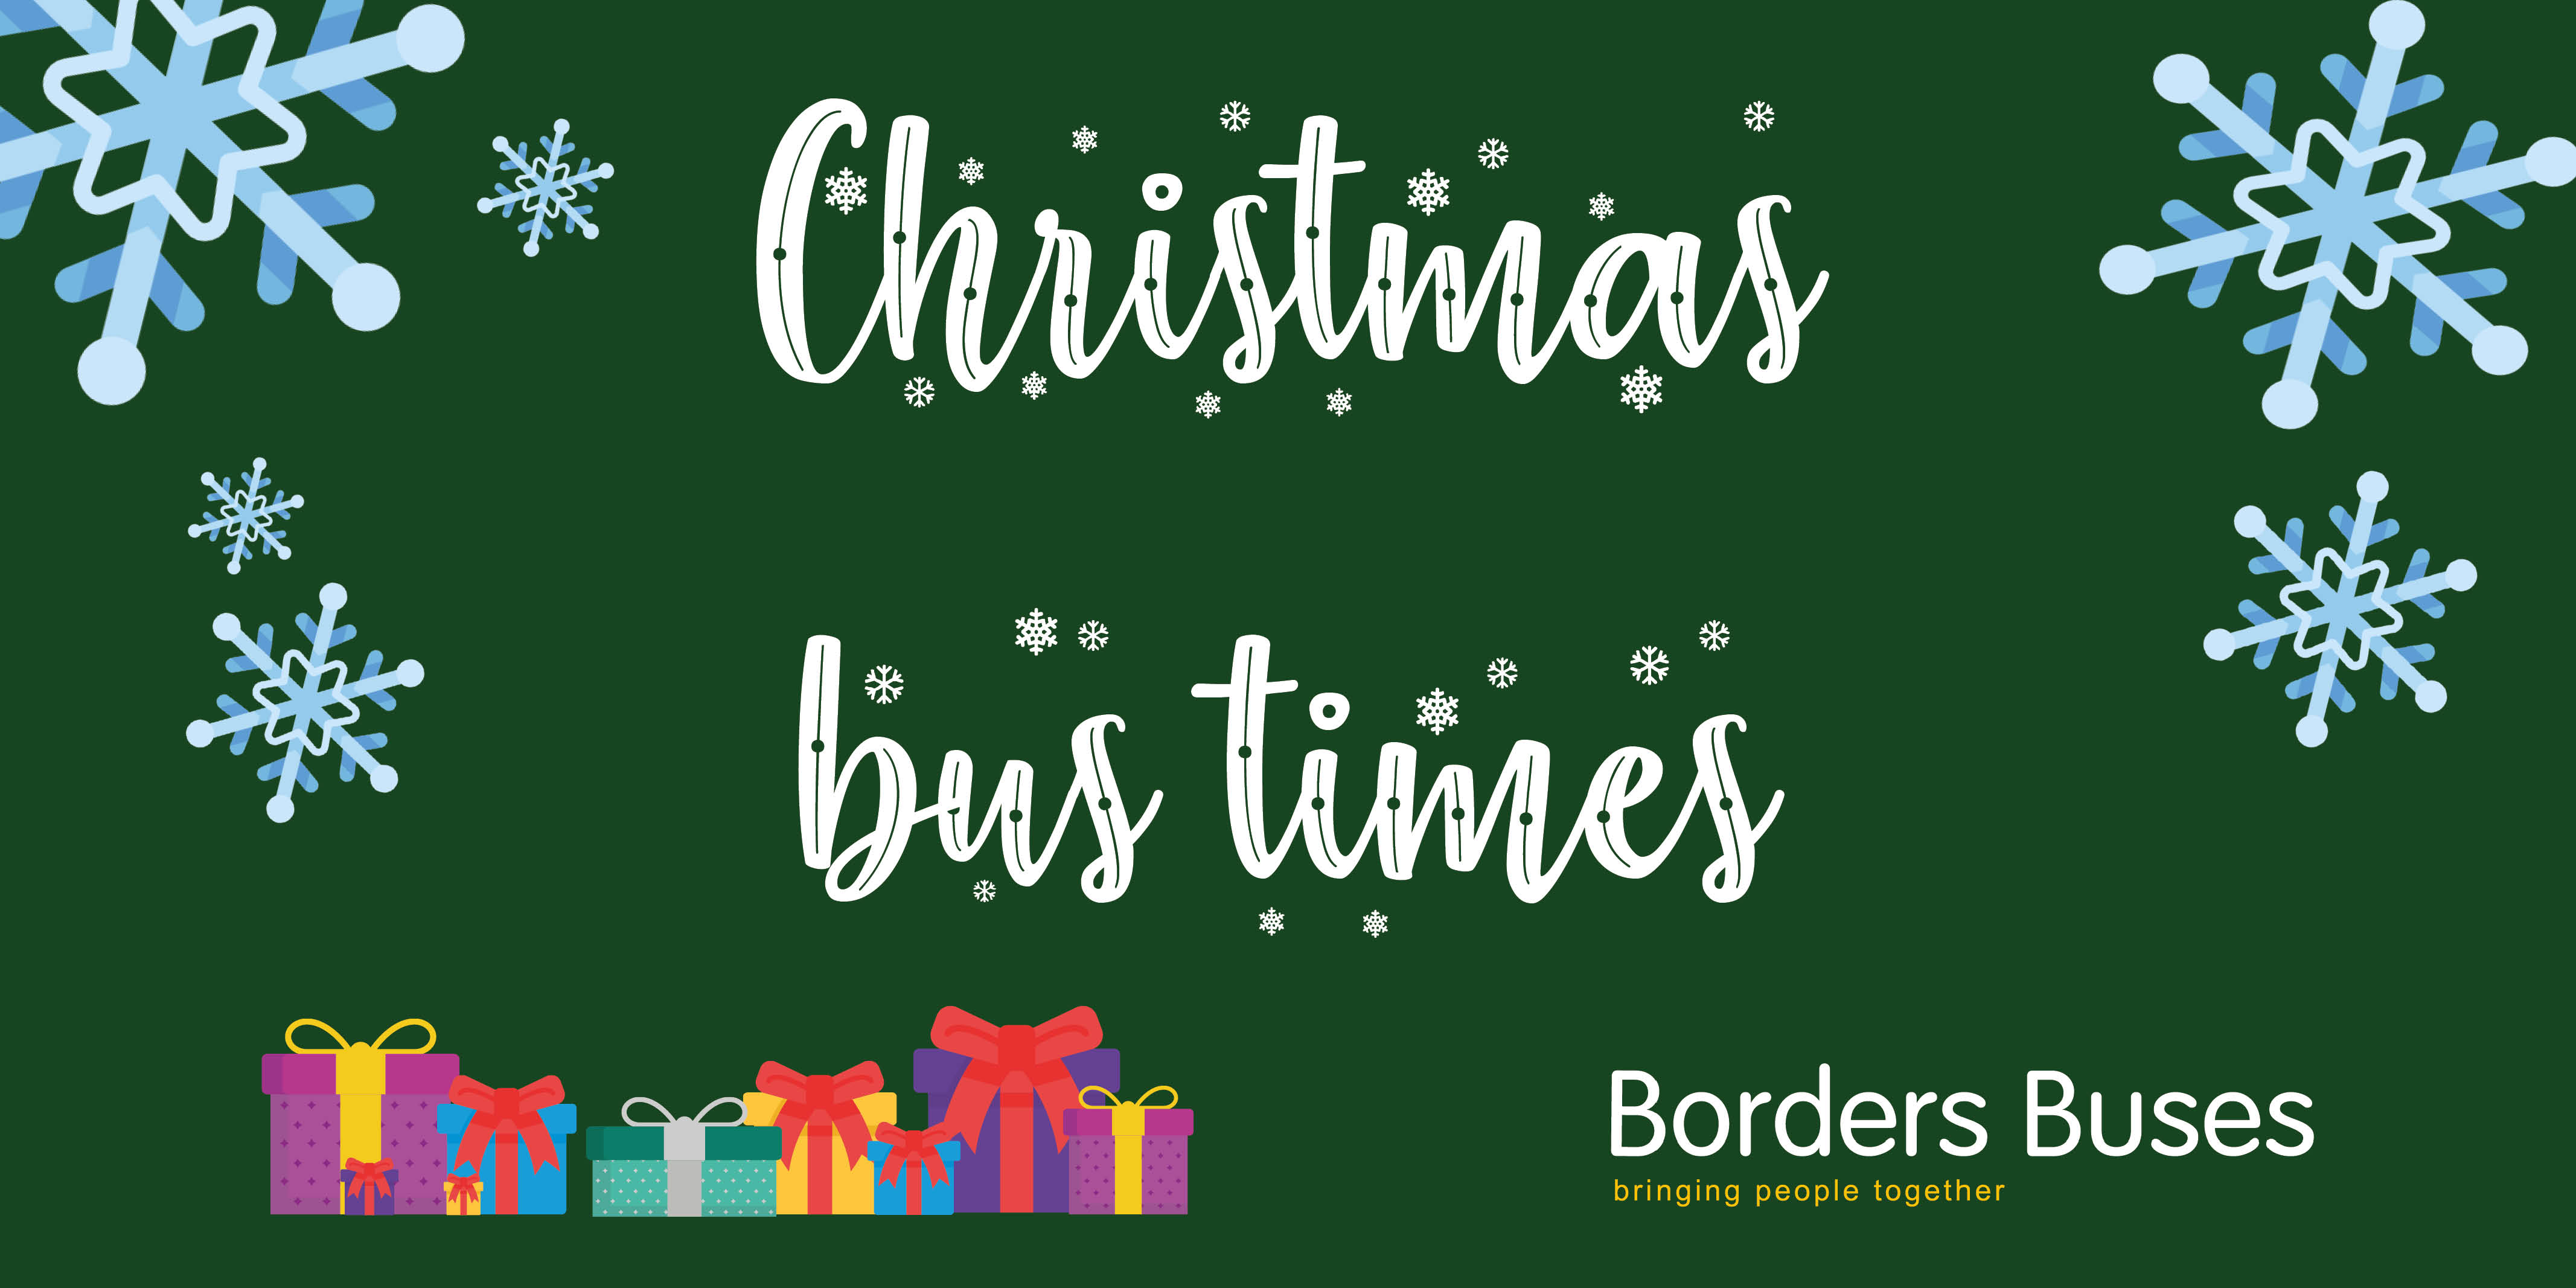 Green graphic reading 'Christmas bus times' with presents and snowflakes